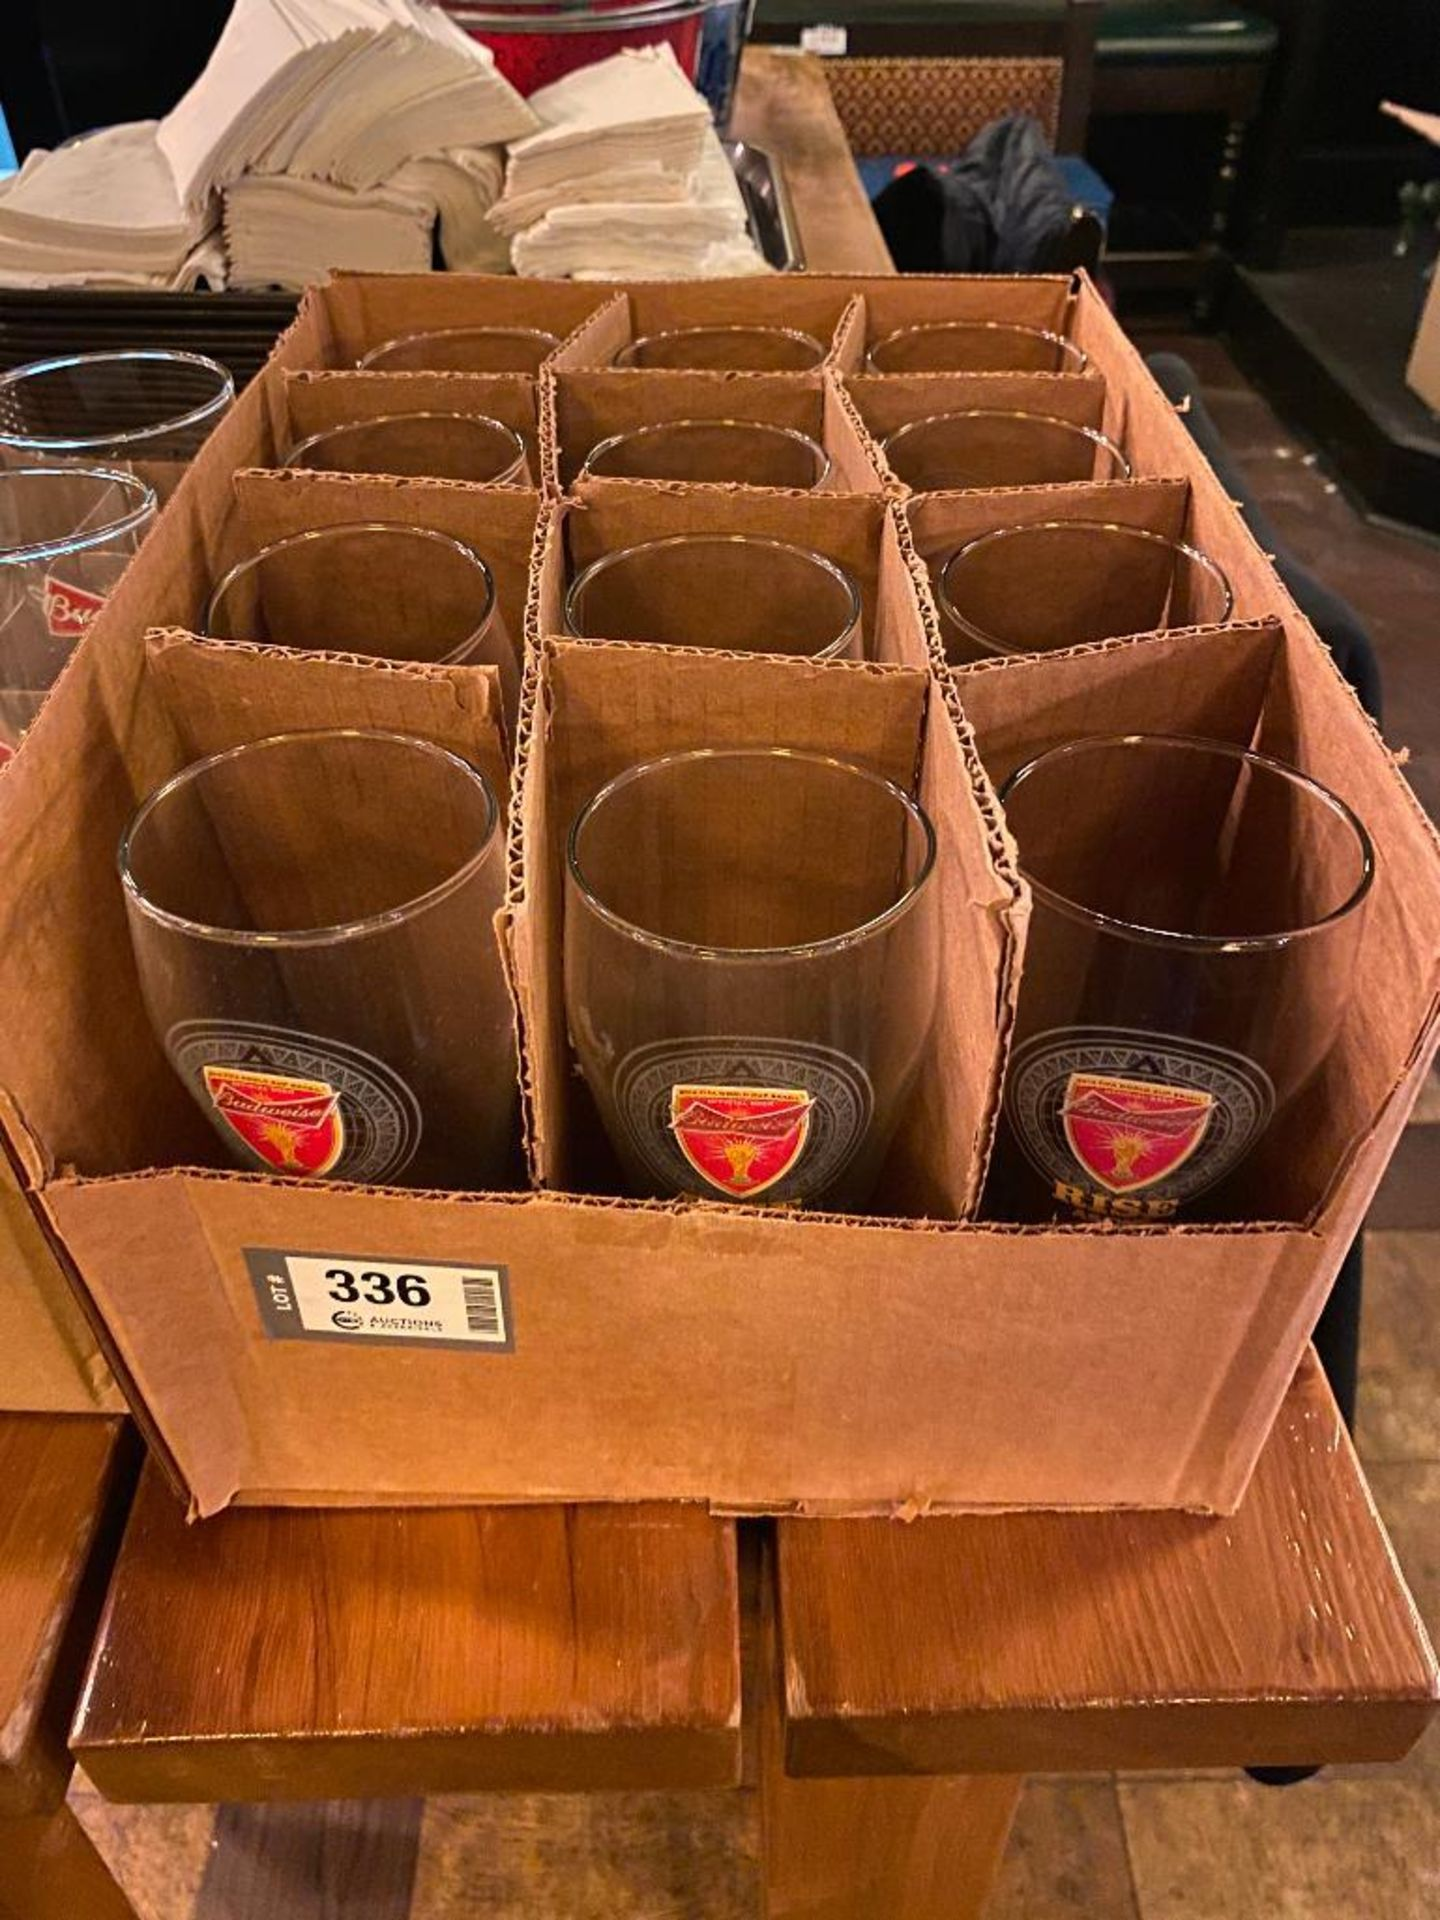 LOT OF (2) BOXES OF BUDWEISER BEER GLASSES - Image 2 of 3